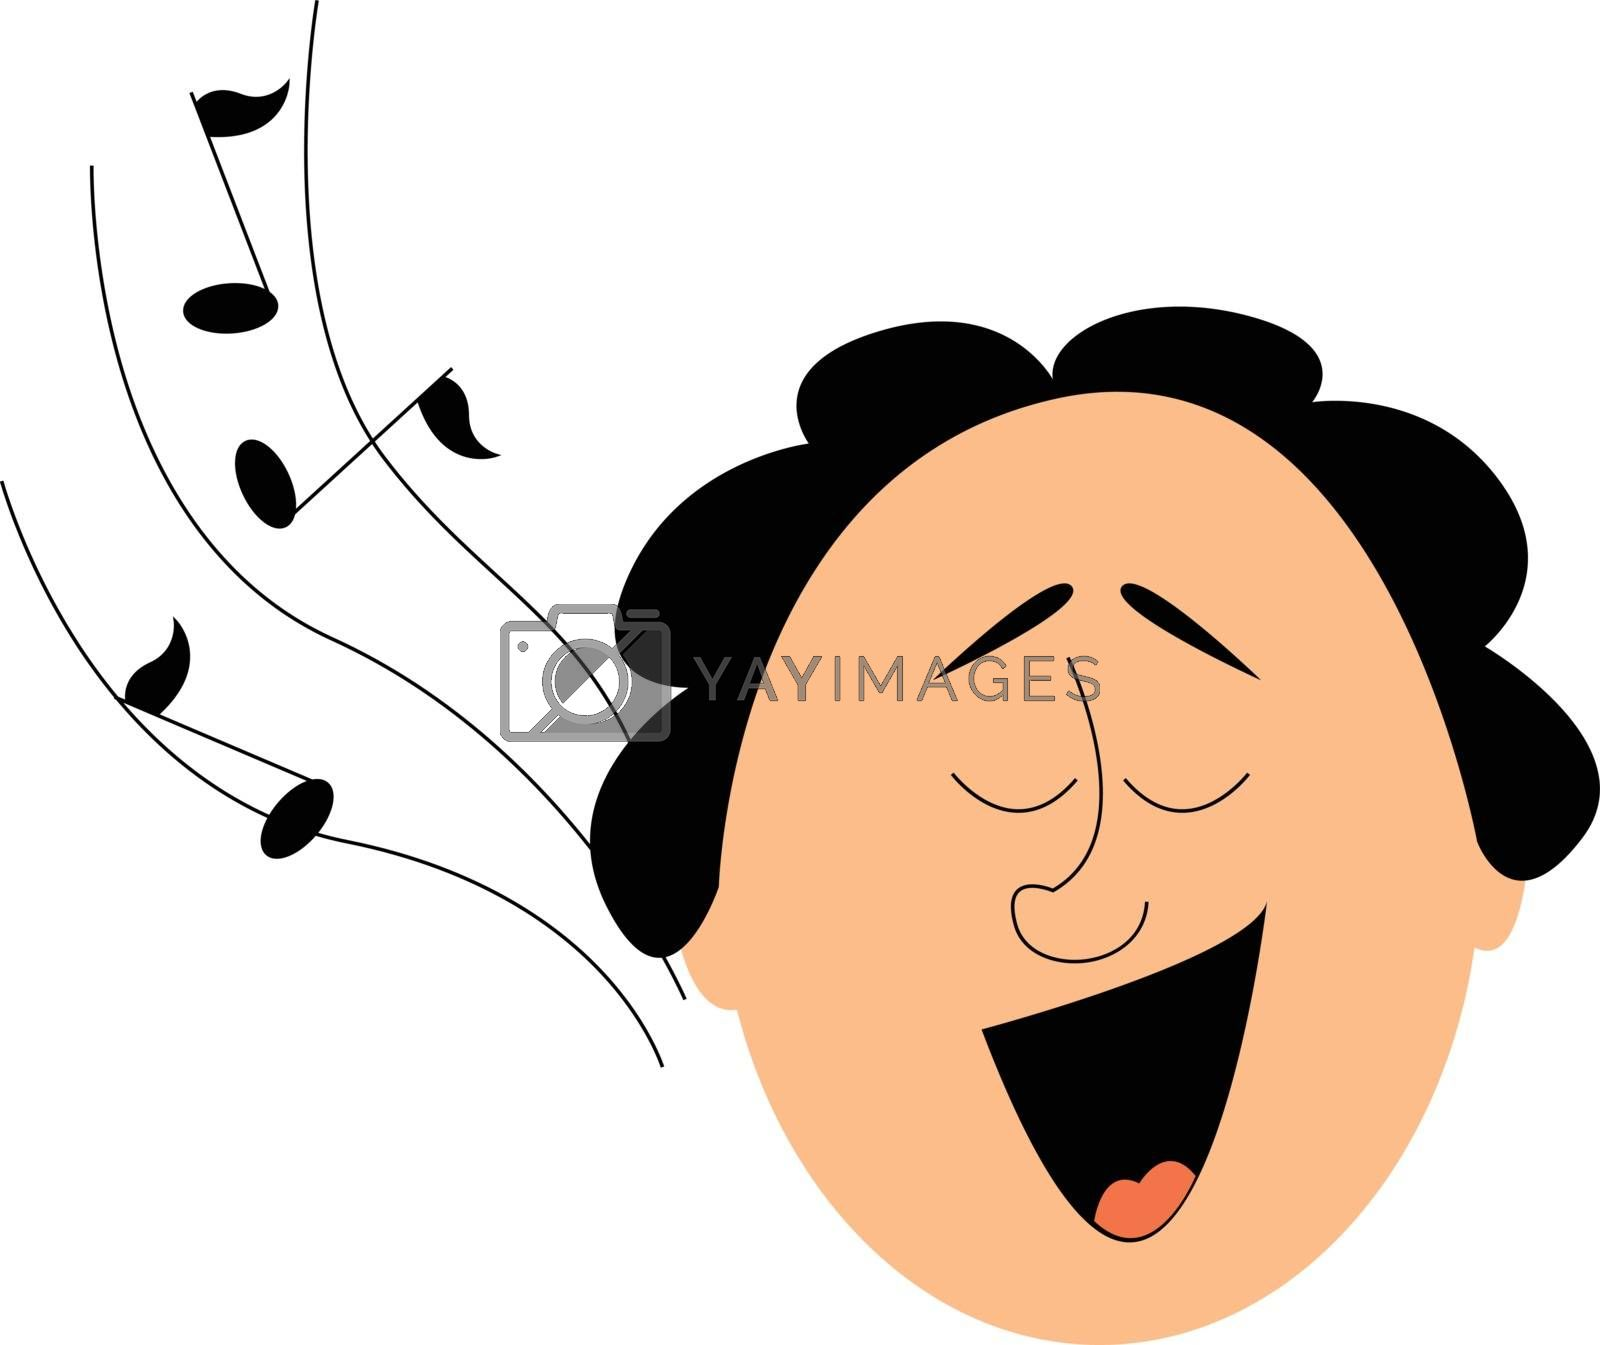 Royalty free image of Portrait of a funny-looking man singing viewed from the front an by Morphart